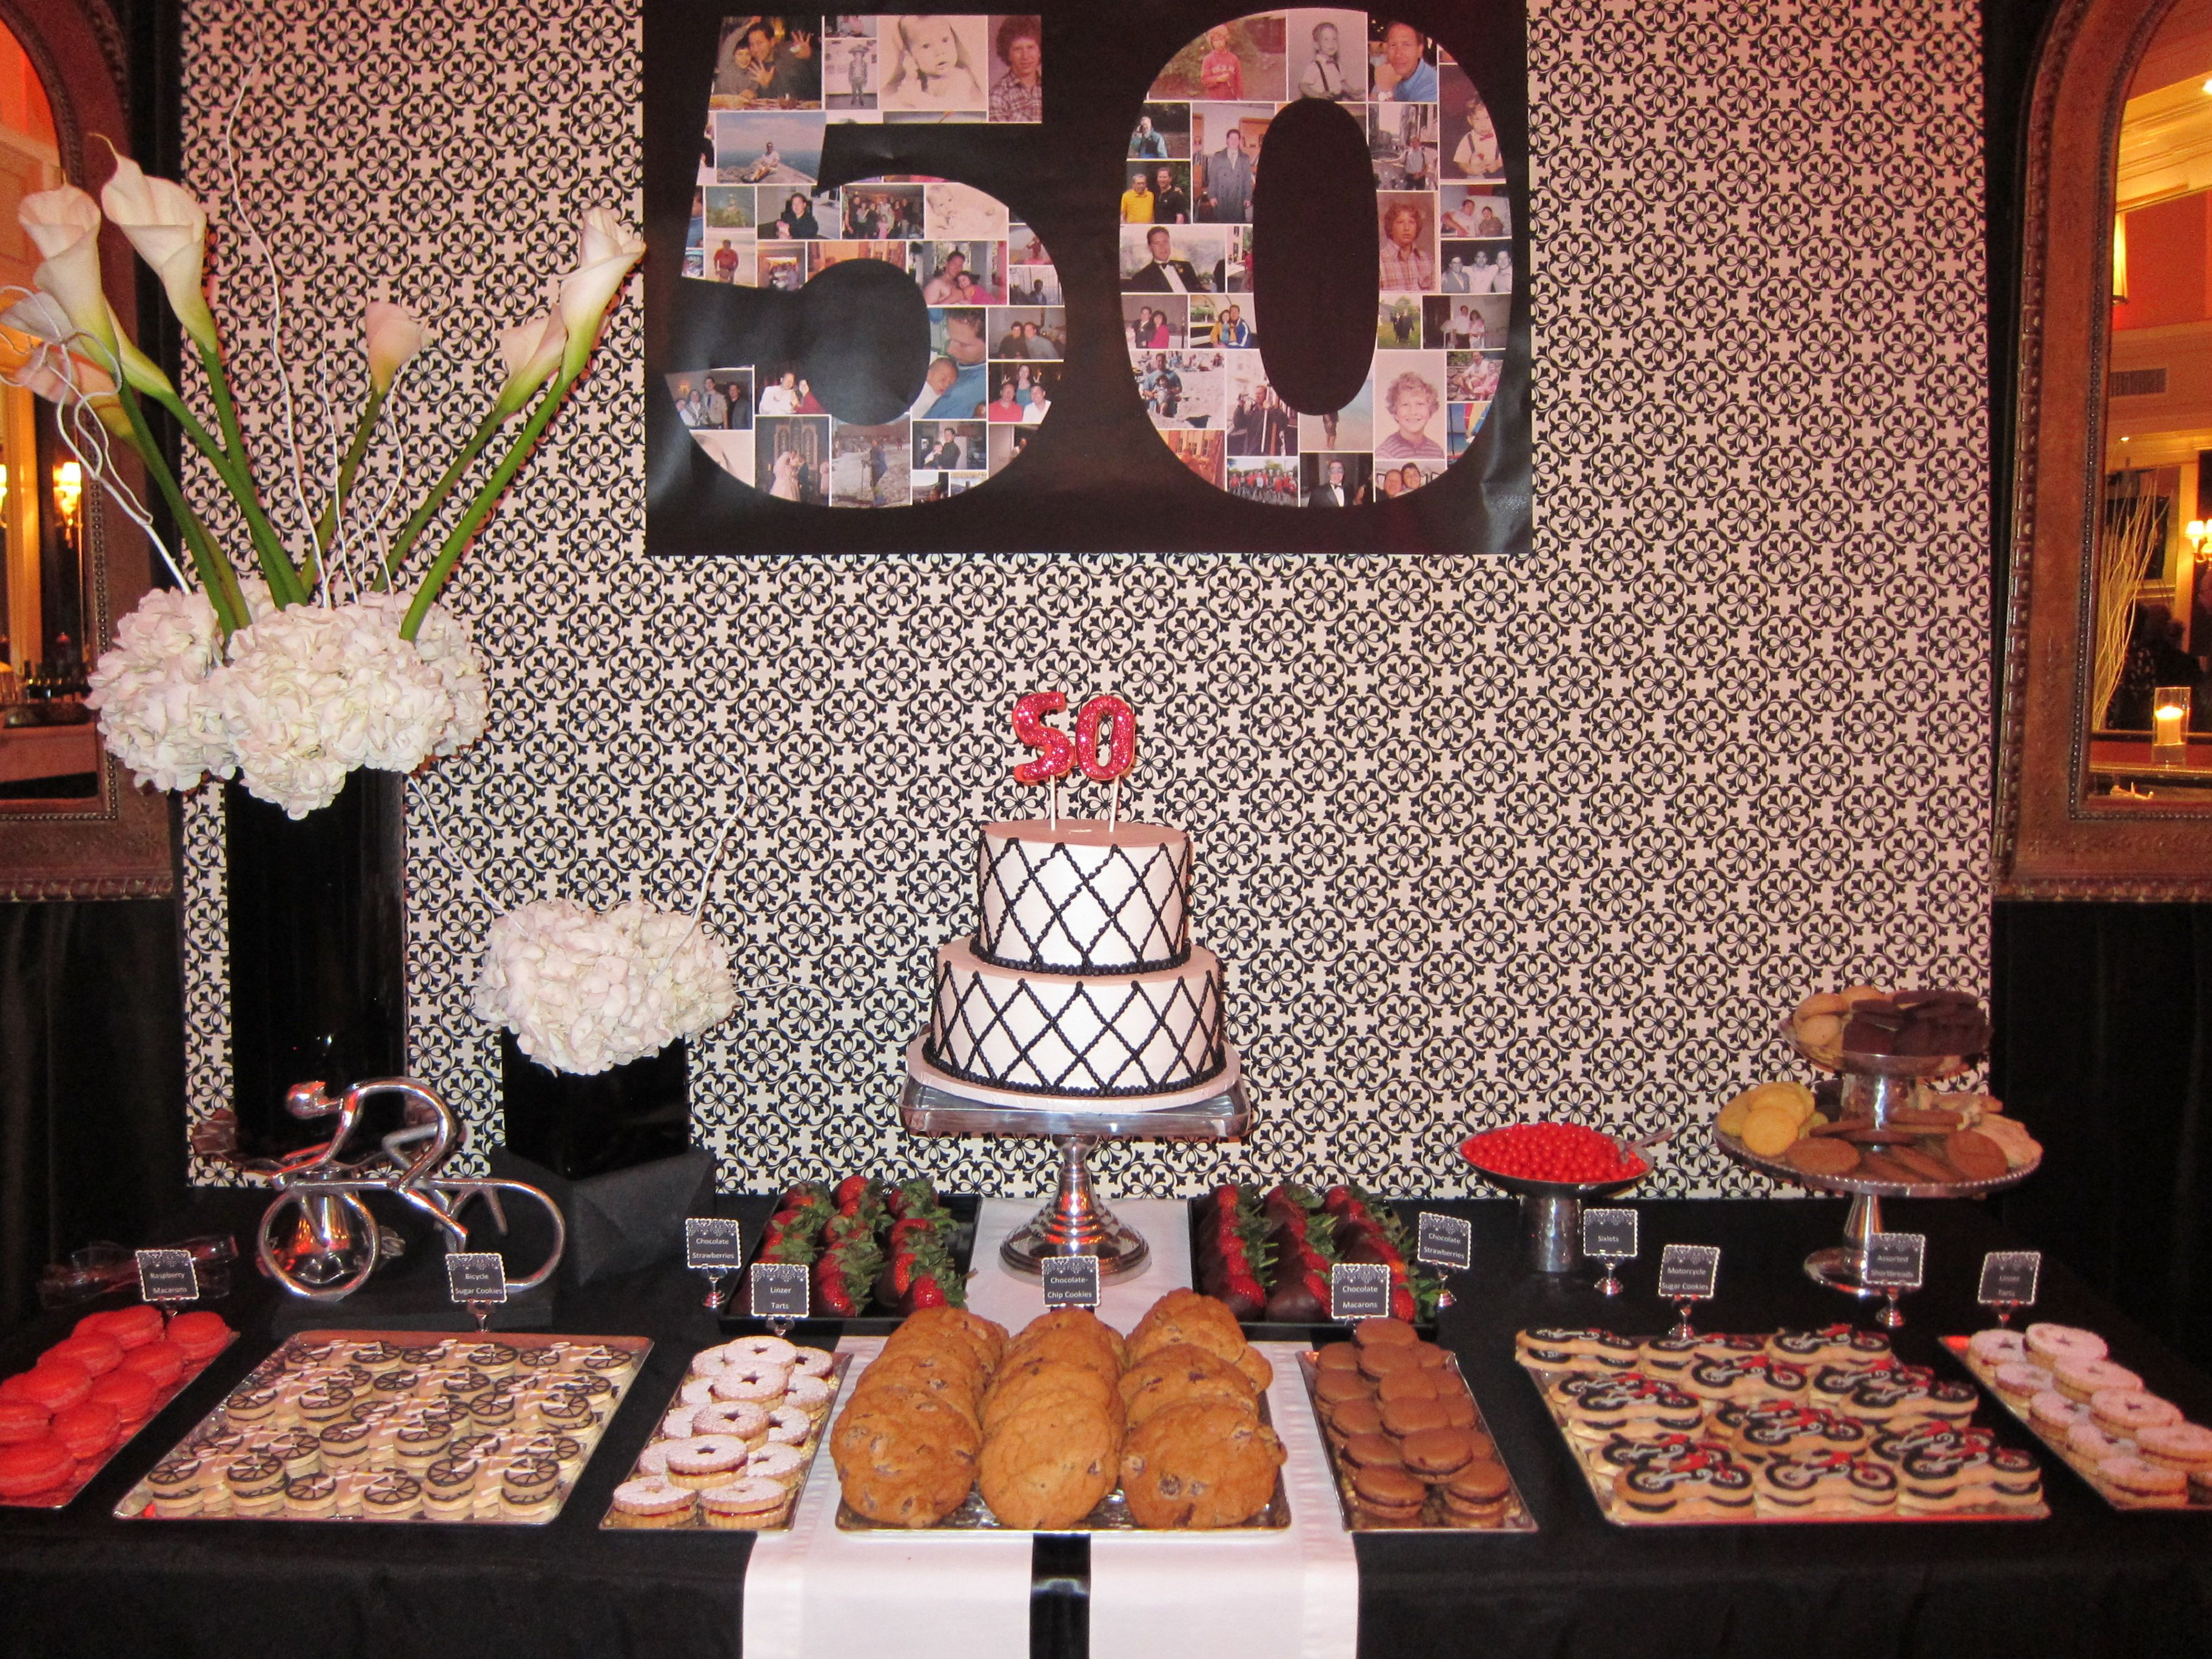 Best ideas about 50th Birthday Table Decorations . Save or Pin 50th Birthday Dessert Table Now.